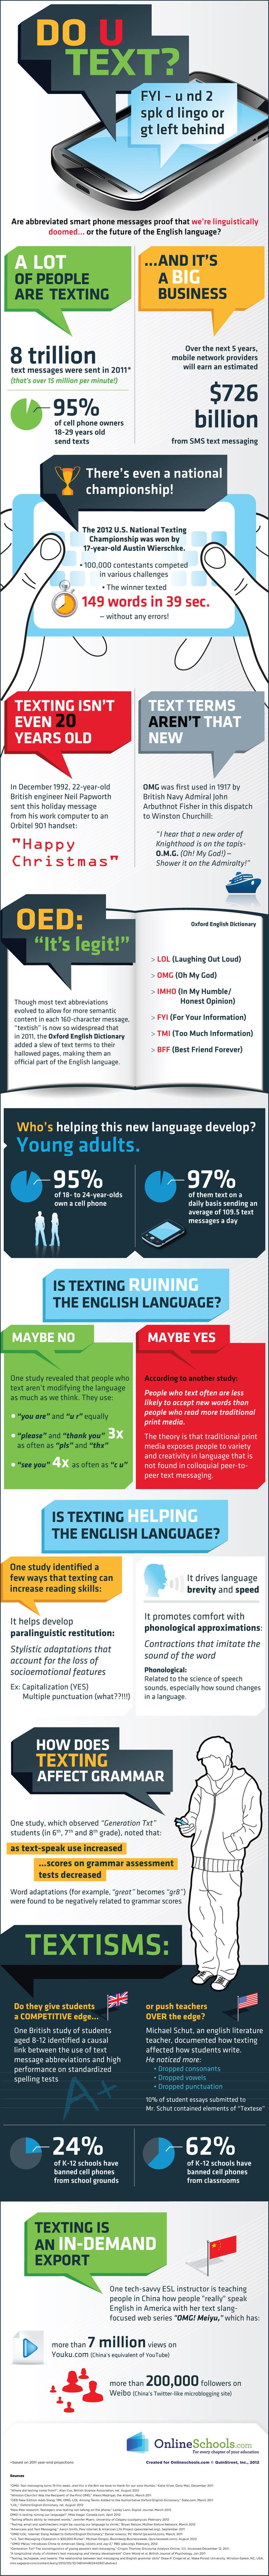 Infographic - Text messages and the English language. From OMG to LOL, there's no denying that texting has changed the way we communicate with each other. Look no further than the fact that you don't need clarification of what OMG or LOL means as proof that our written communication is evolving.